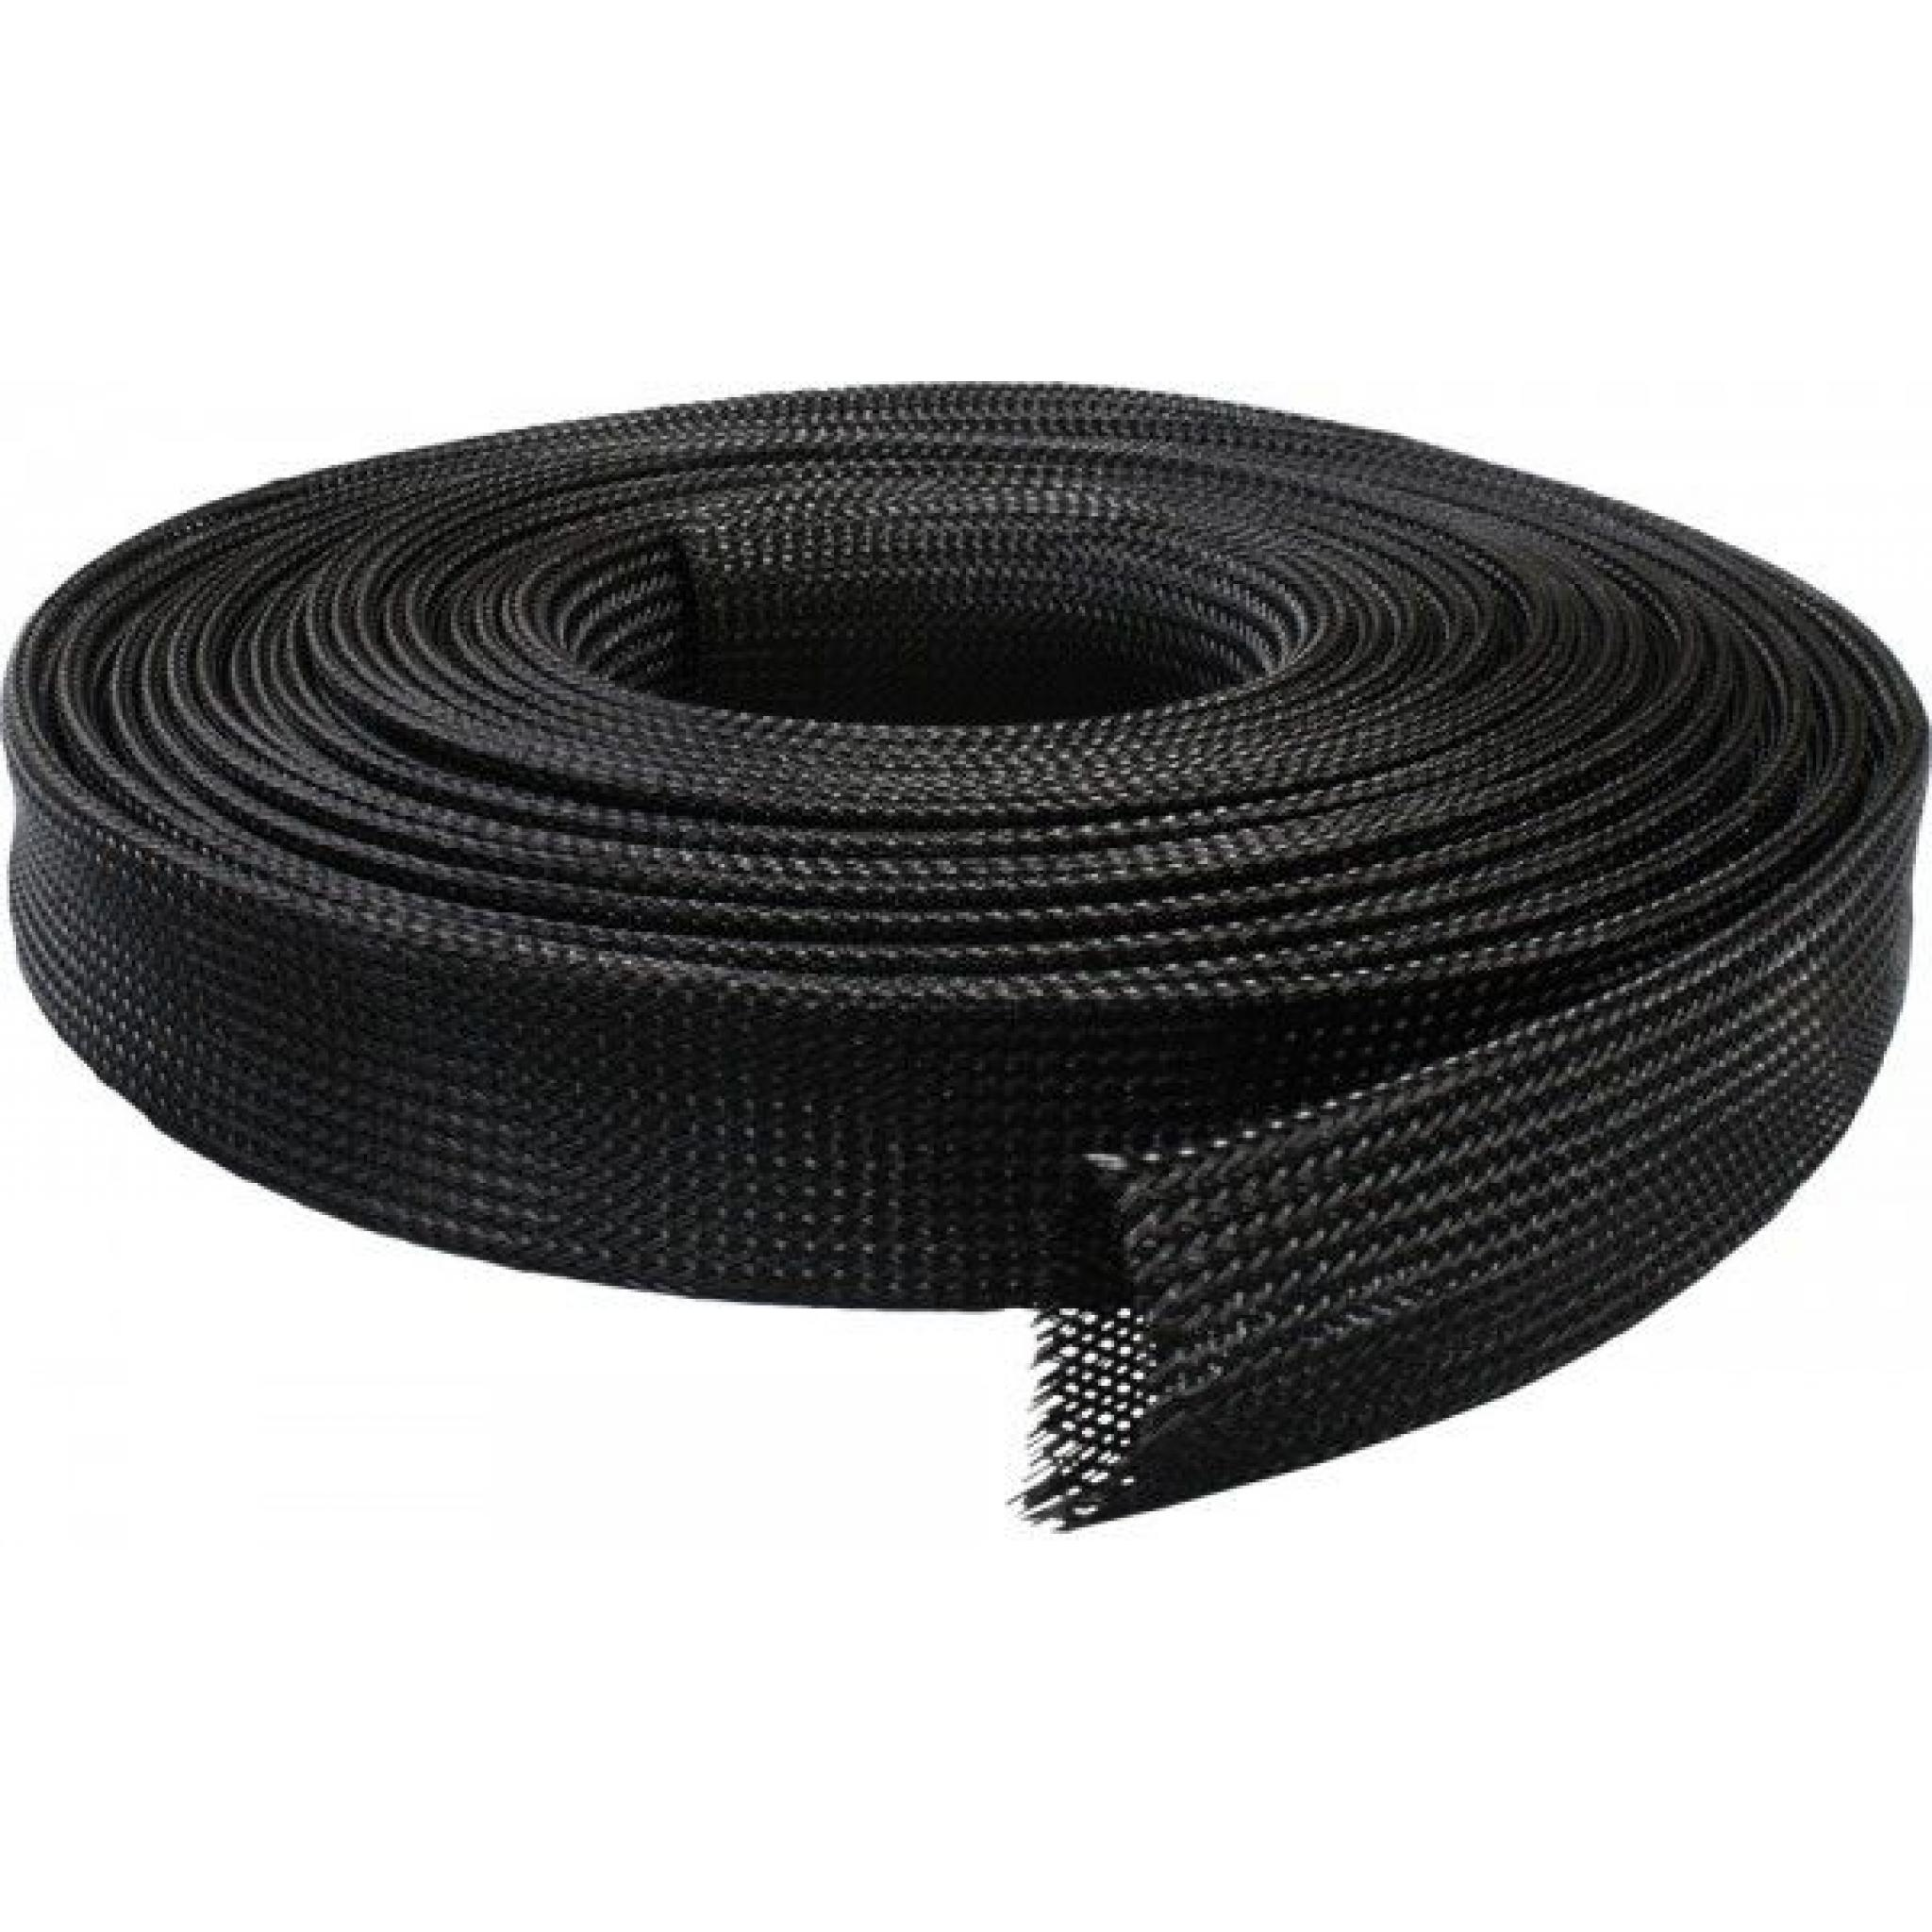 Wire Harness Sheathing Marine Expandable Black Braided Cable Sleeving Auto